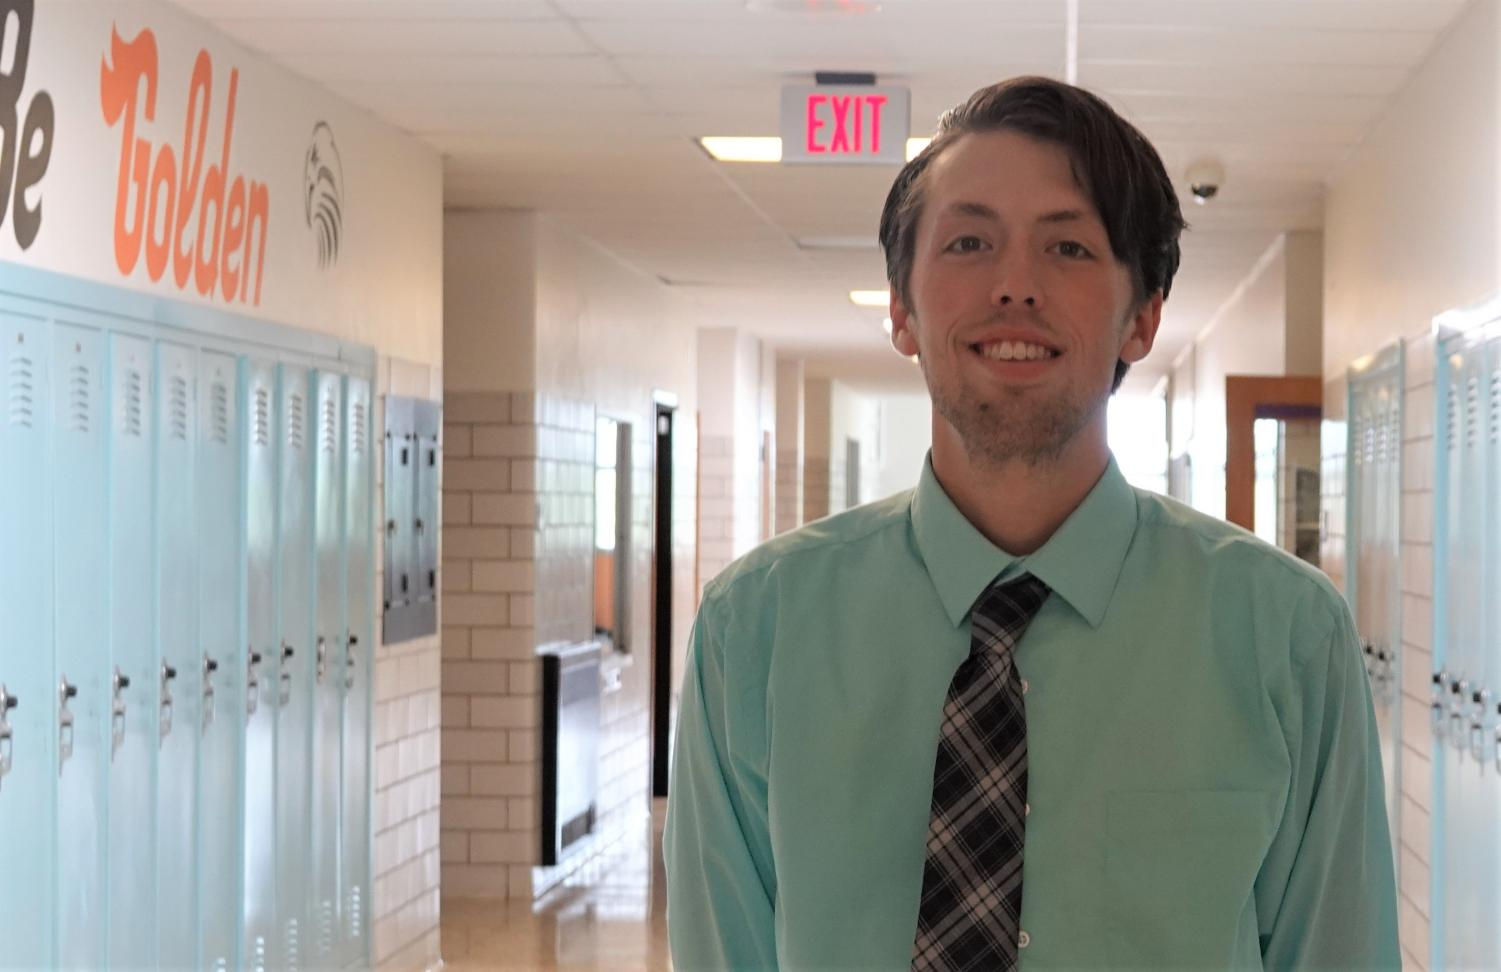 Mr. Josh King of Williamsburg is the newest member of the Social Studies Department, teaching three sections of civics and one of psychology